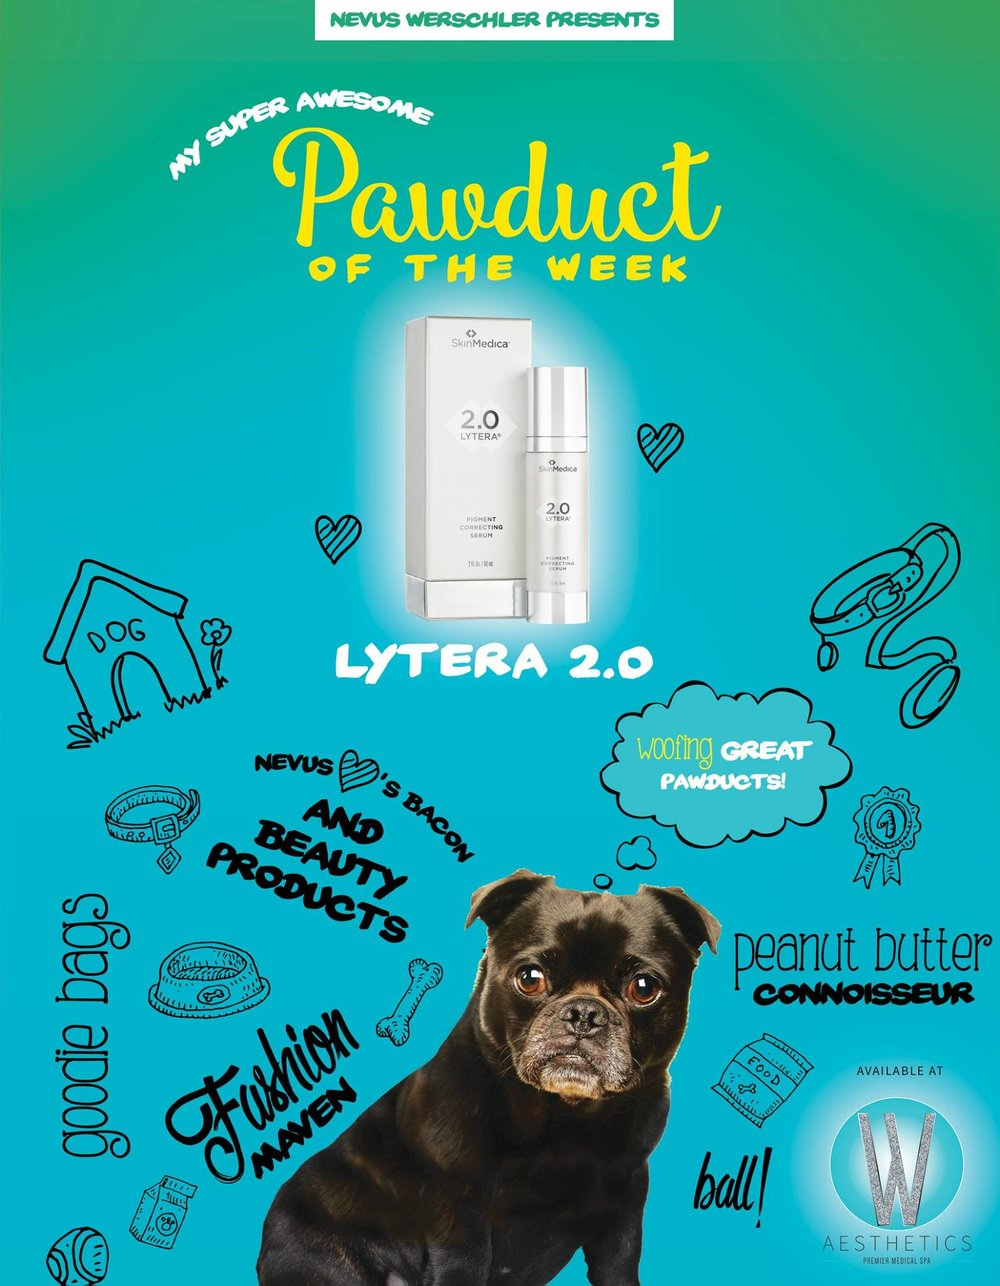 Lytera 2.0 is one of the many innovative skincare products in-stock at Werschler Aesthetics Premier Medical Spa in Spokane, WA.